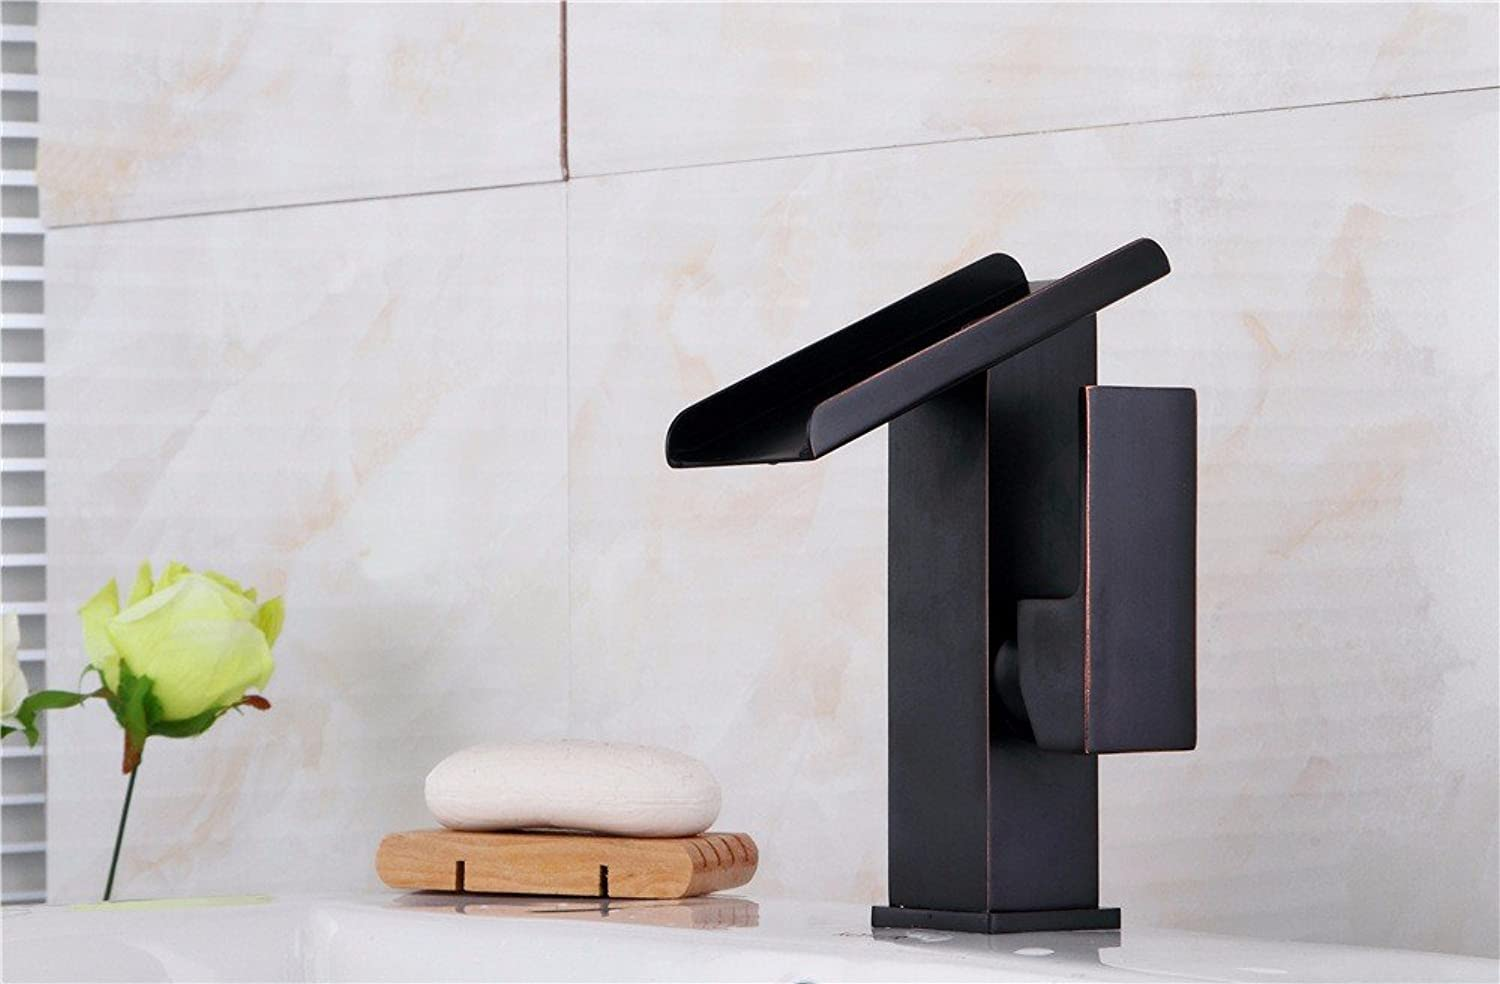 TS-nslixuan-Tap-Sink Tap Bathroom Wash Basin Full Copper Cold And Hot Single Hole Waterfall Faucet